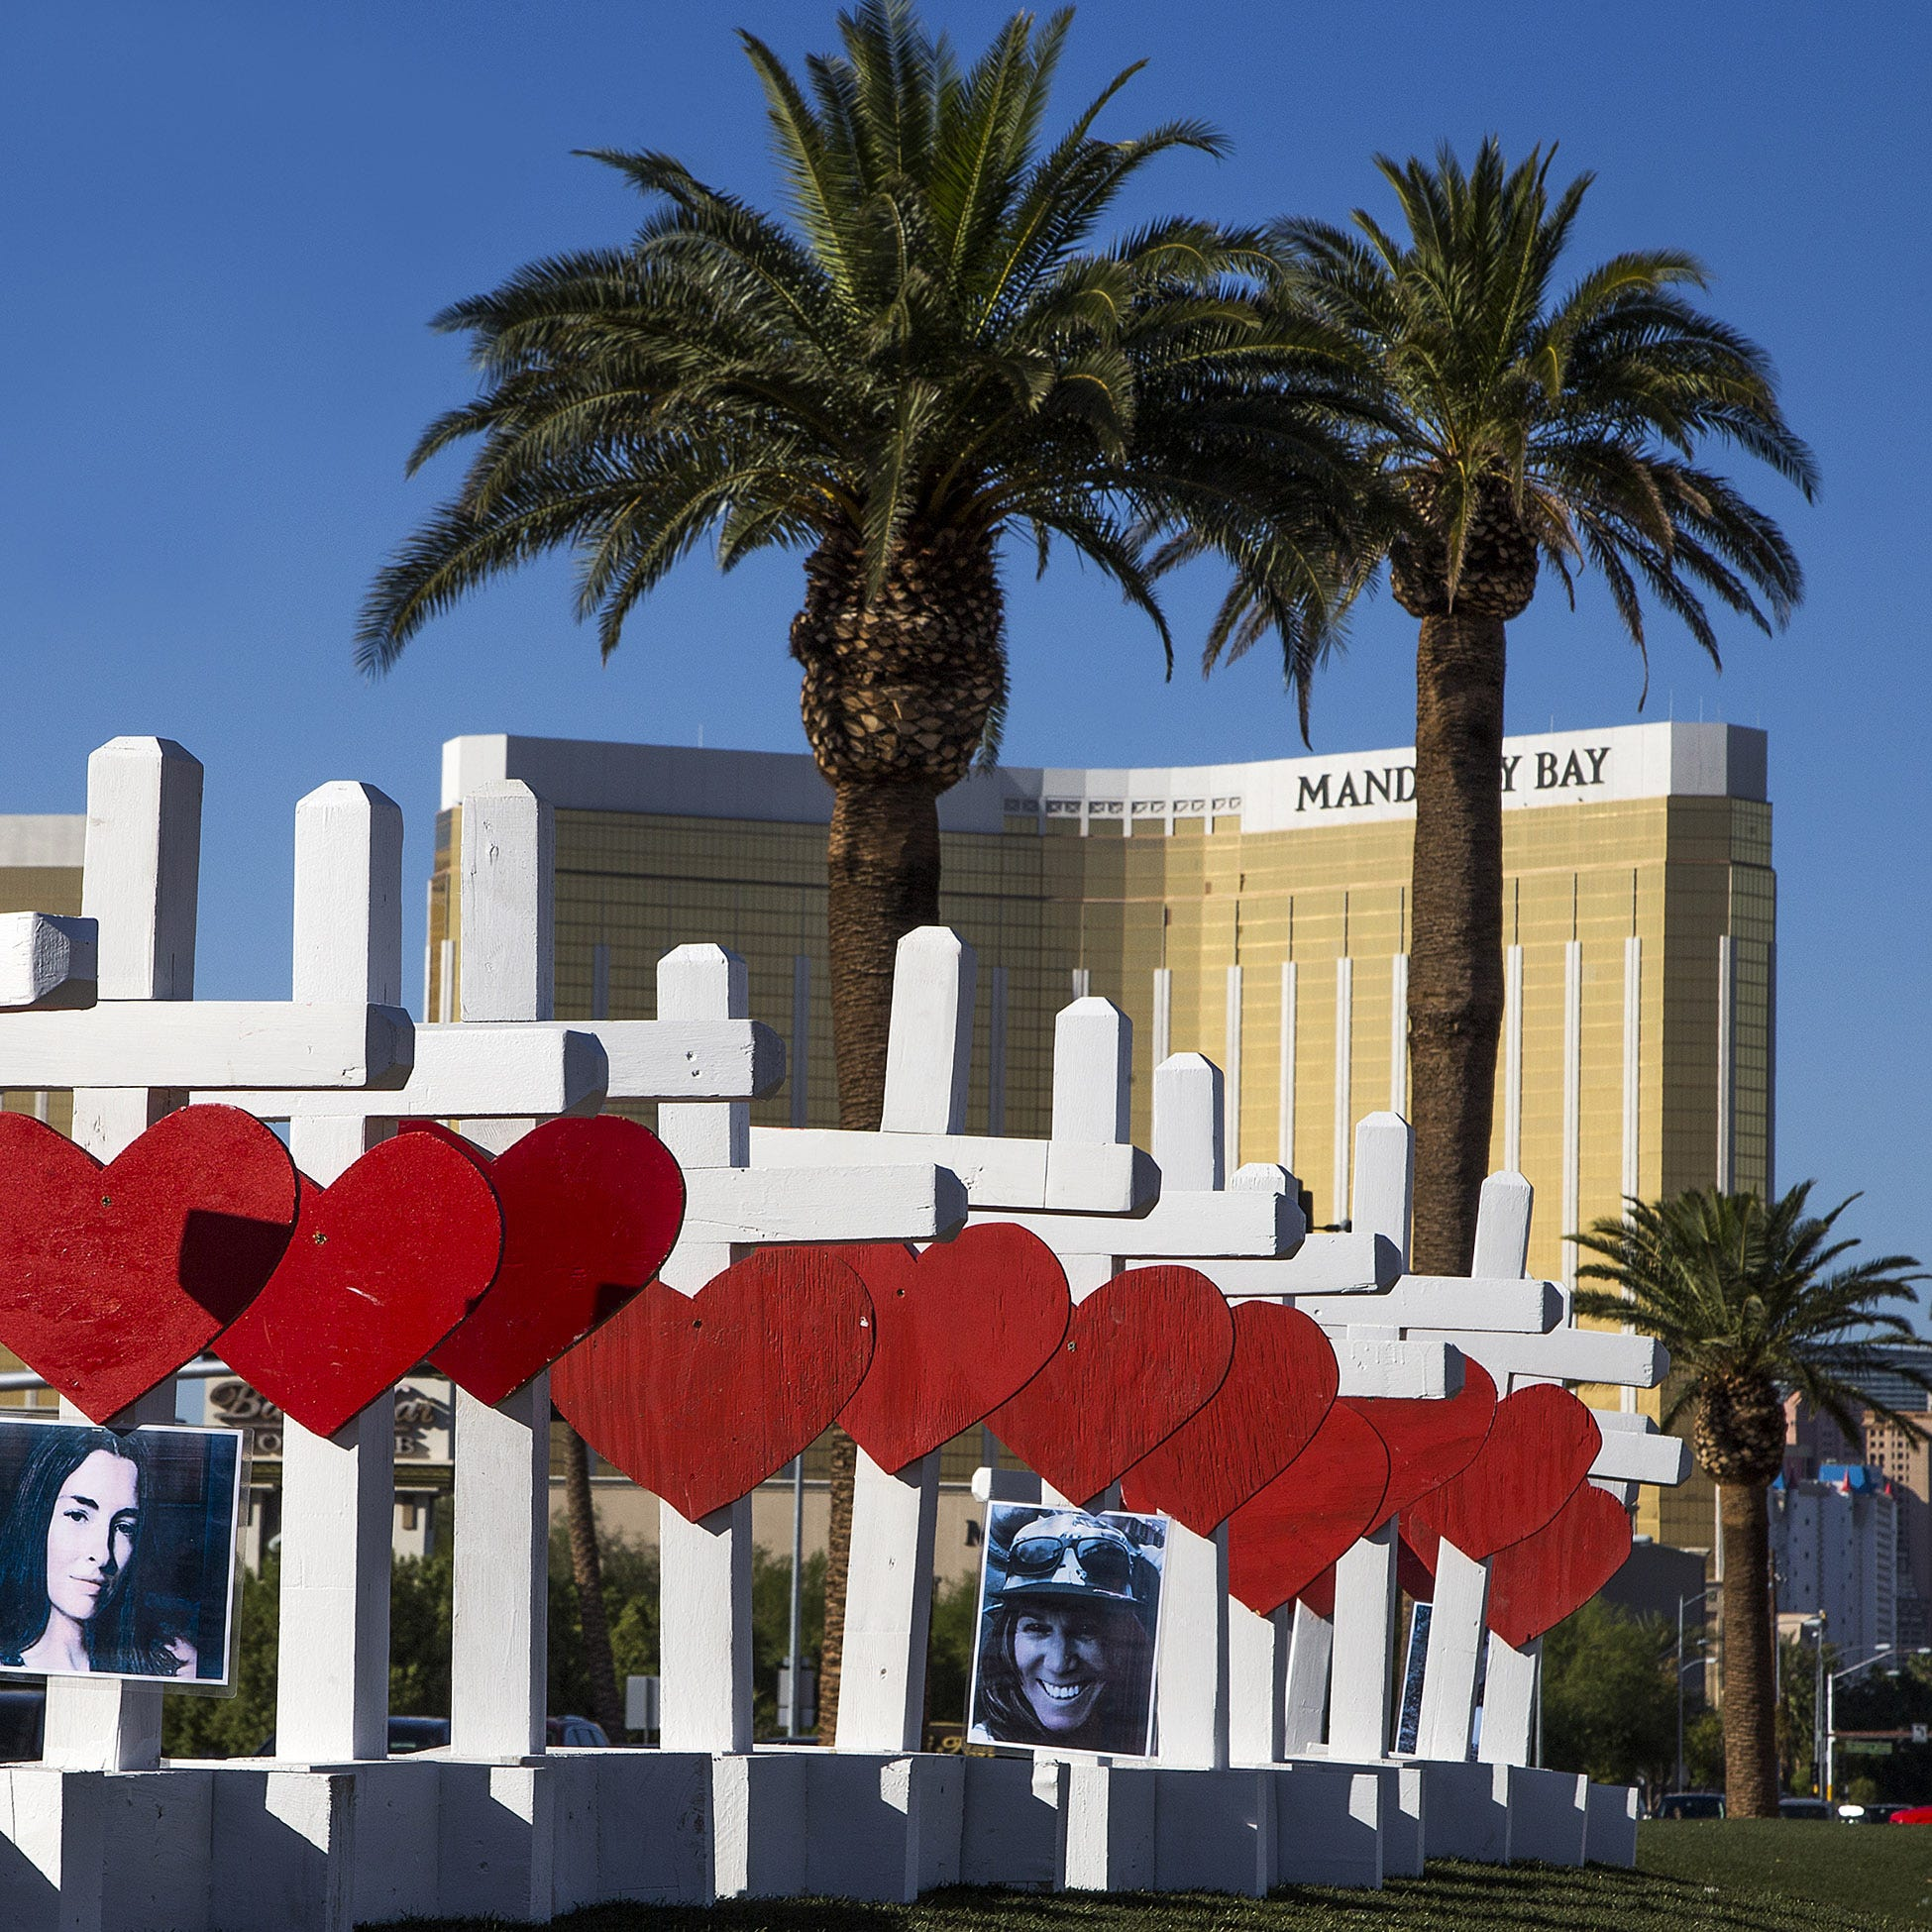 A memorial to the victims of the shooting is seen near the Mandalay Bay Hotel on Oct. 5, 2017.